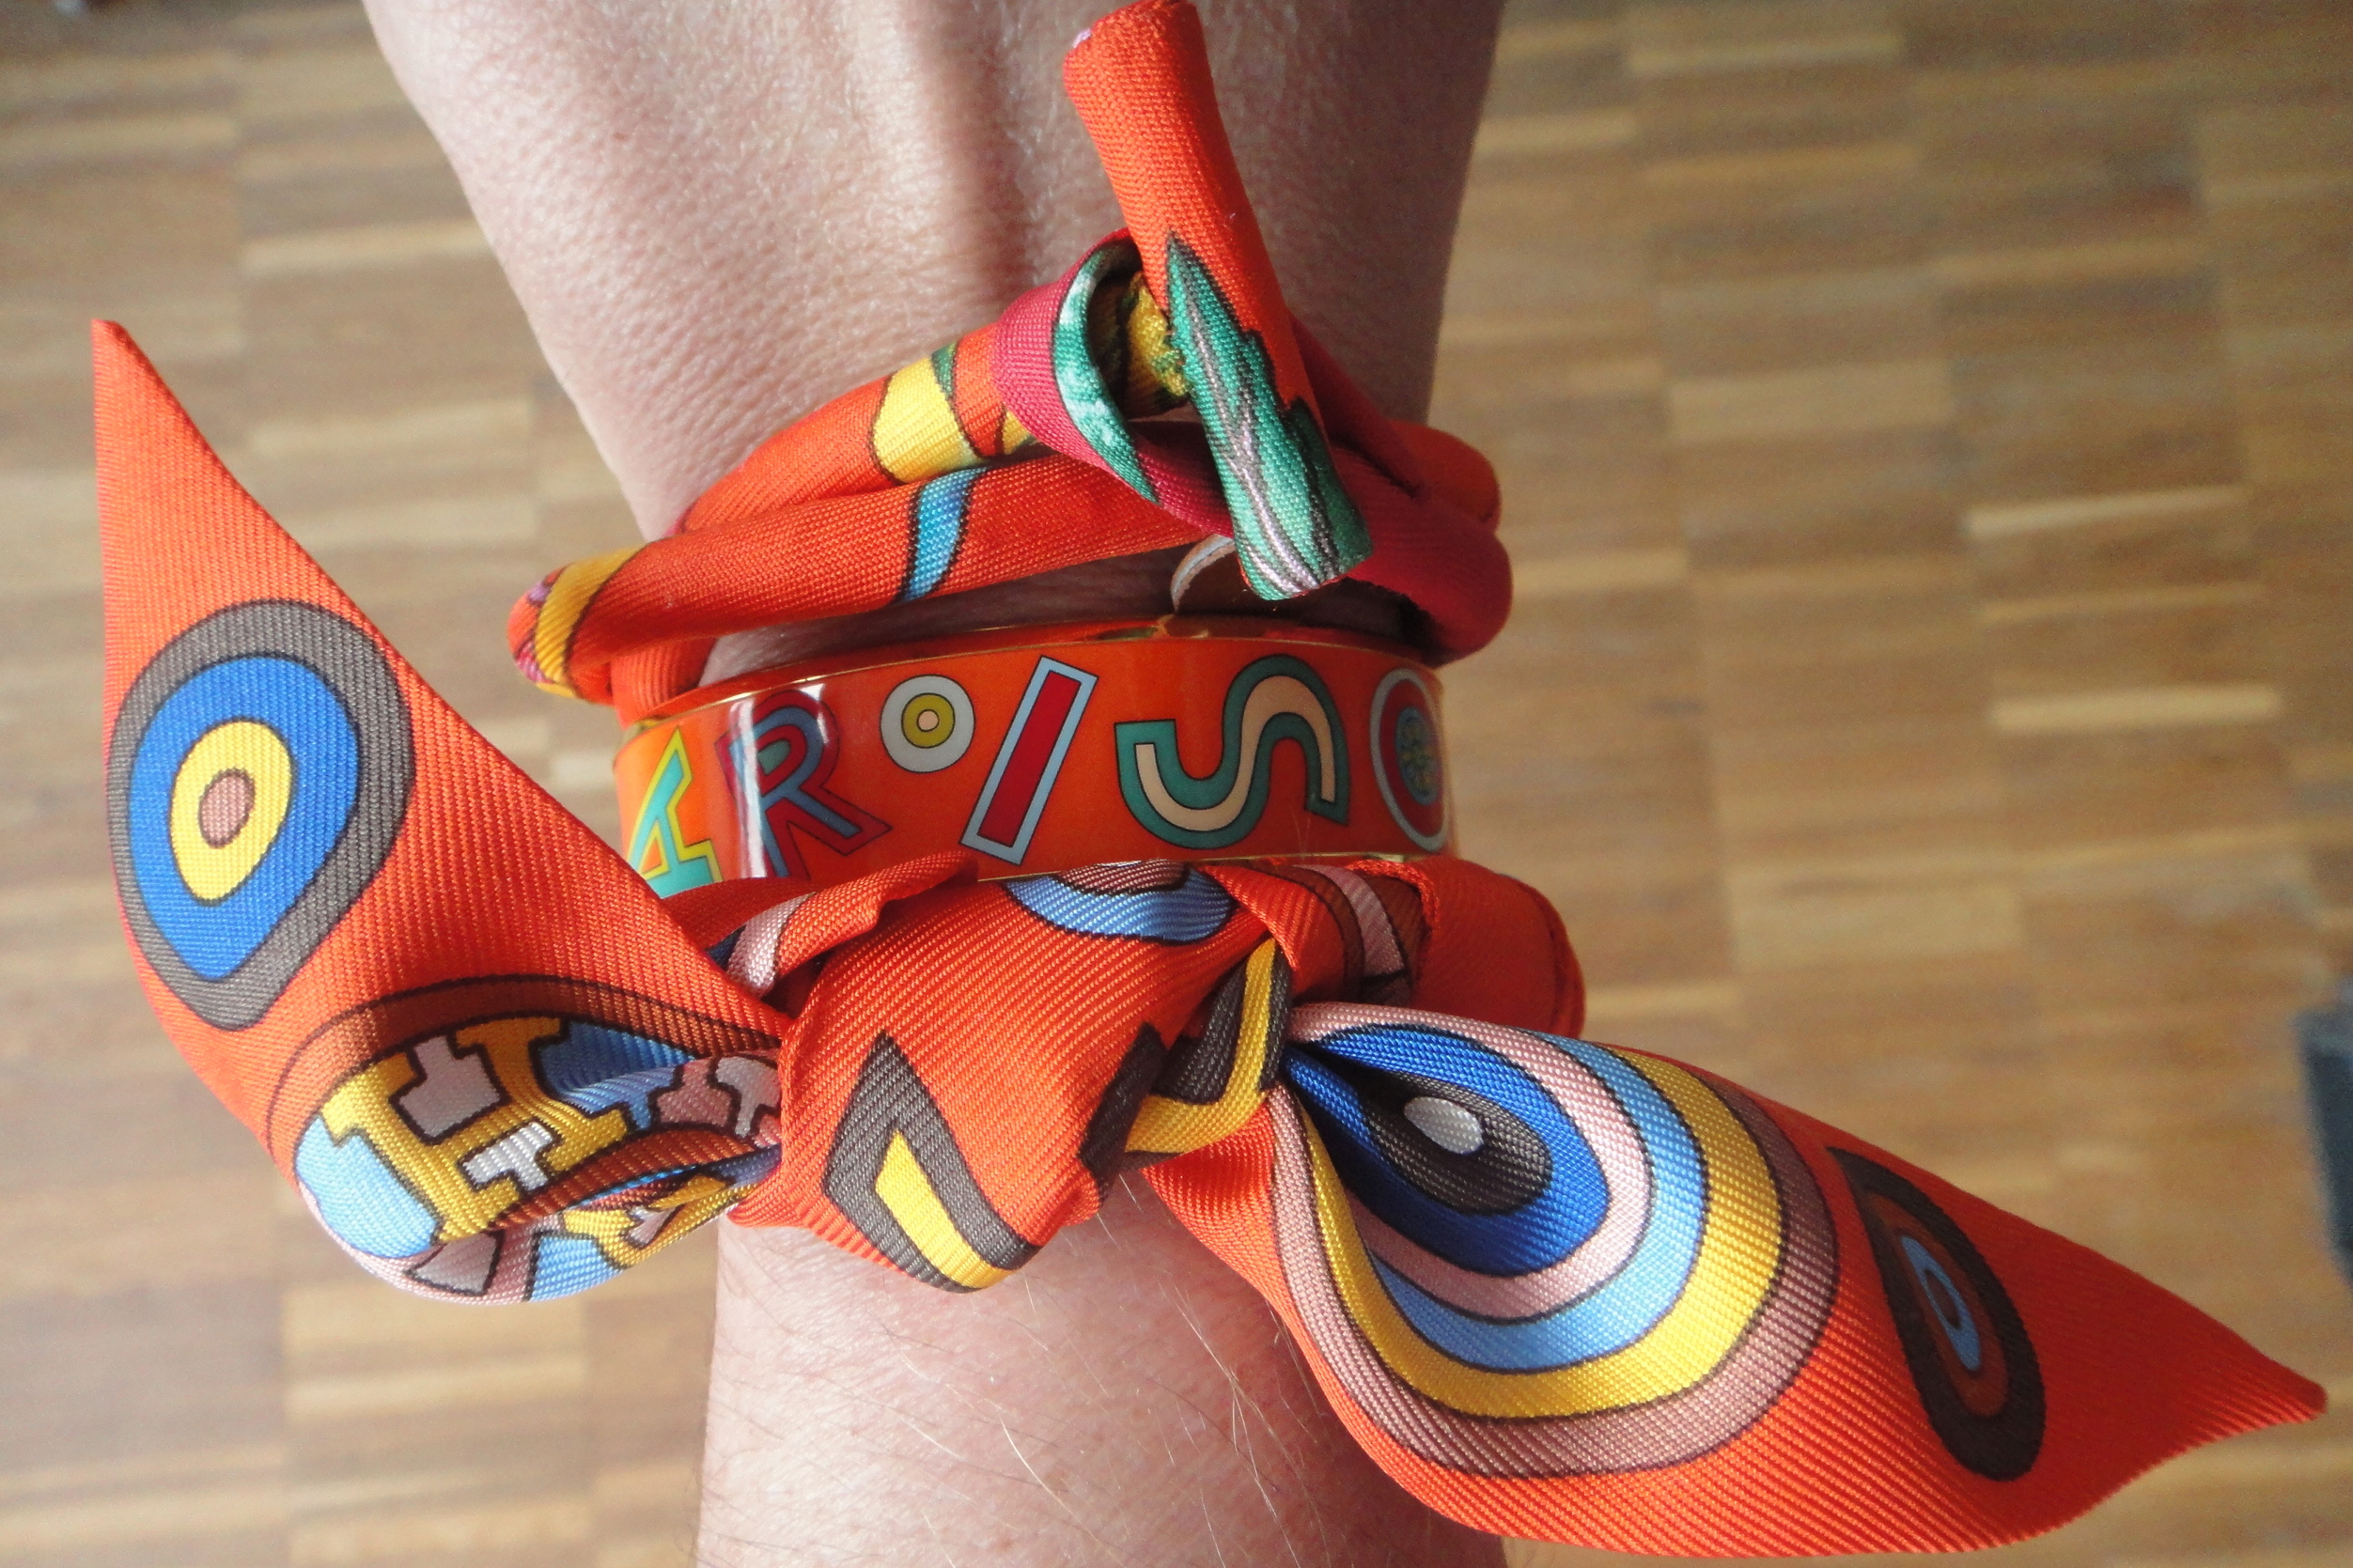 going a bit crazy on Hermès silk bracelets with enamel bangle